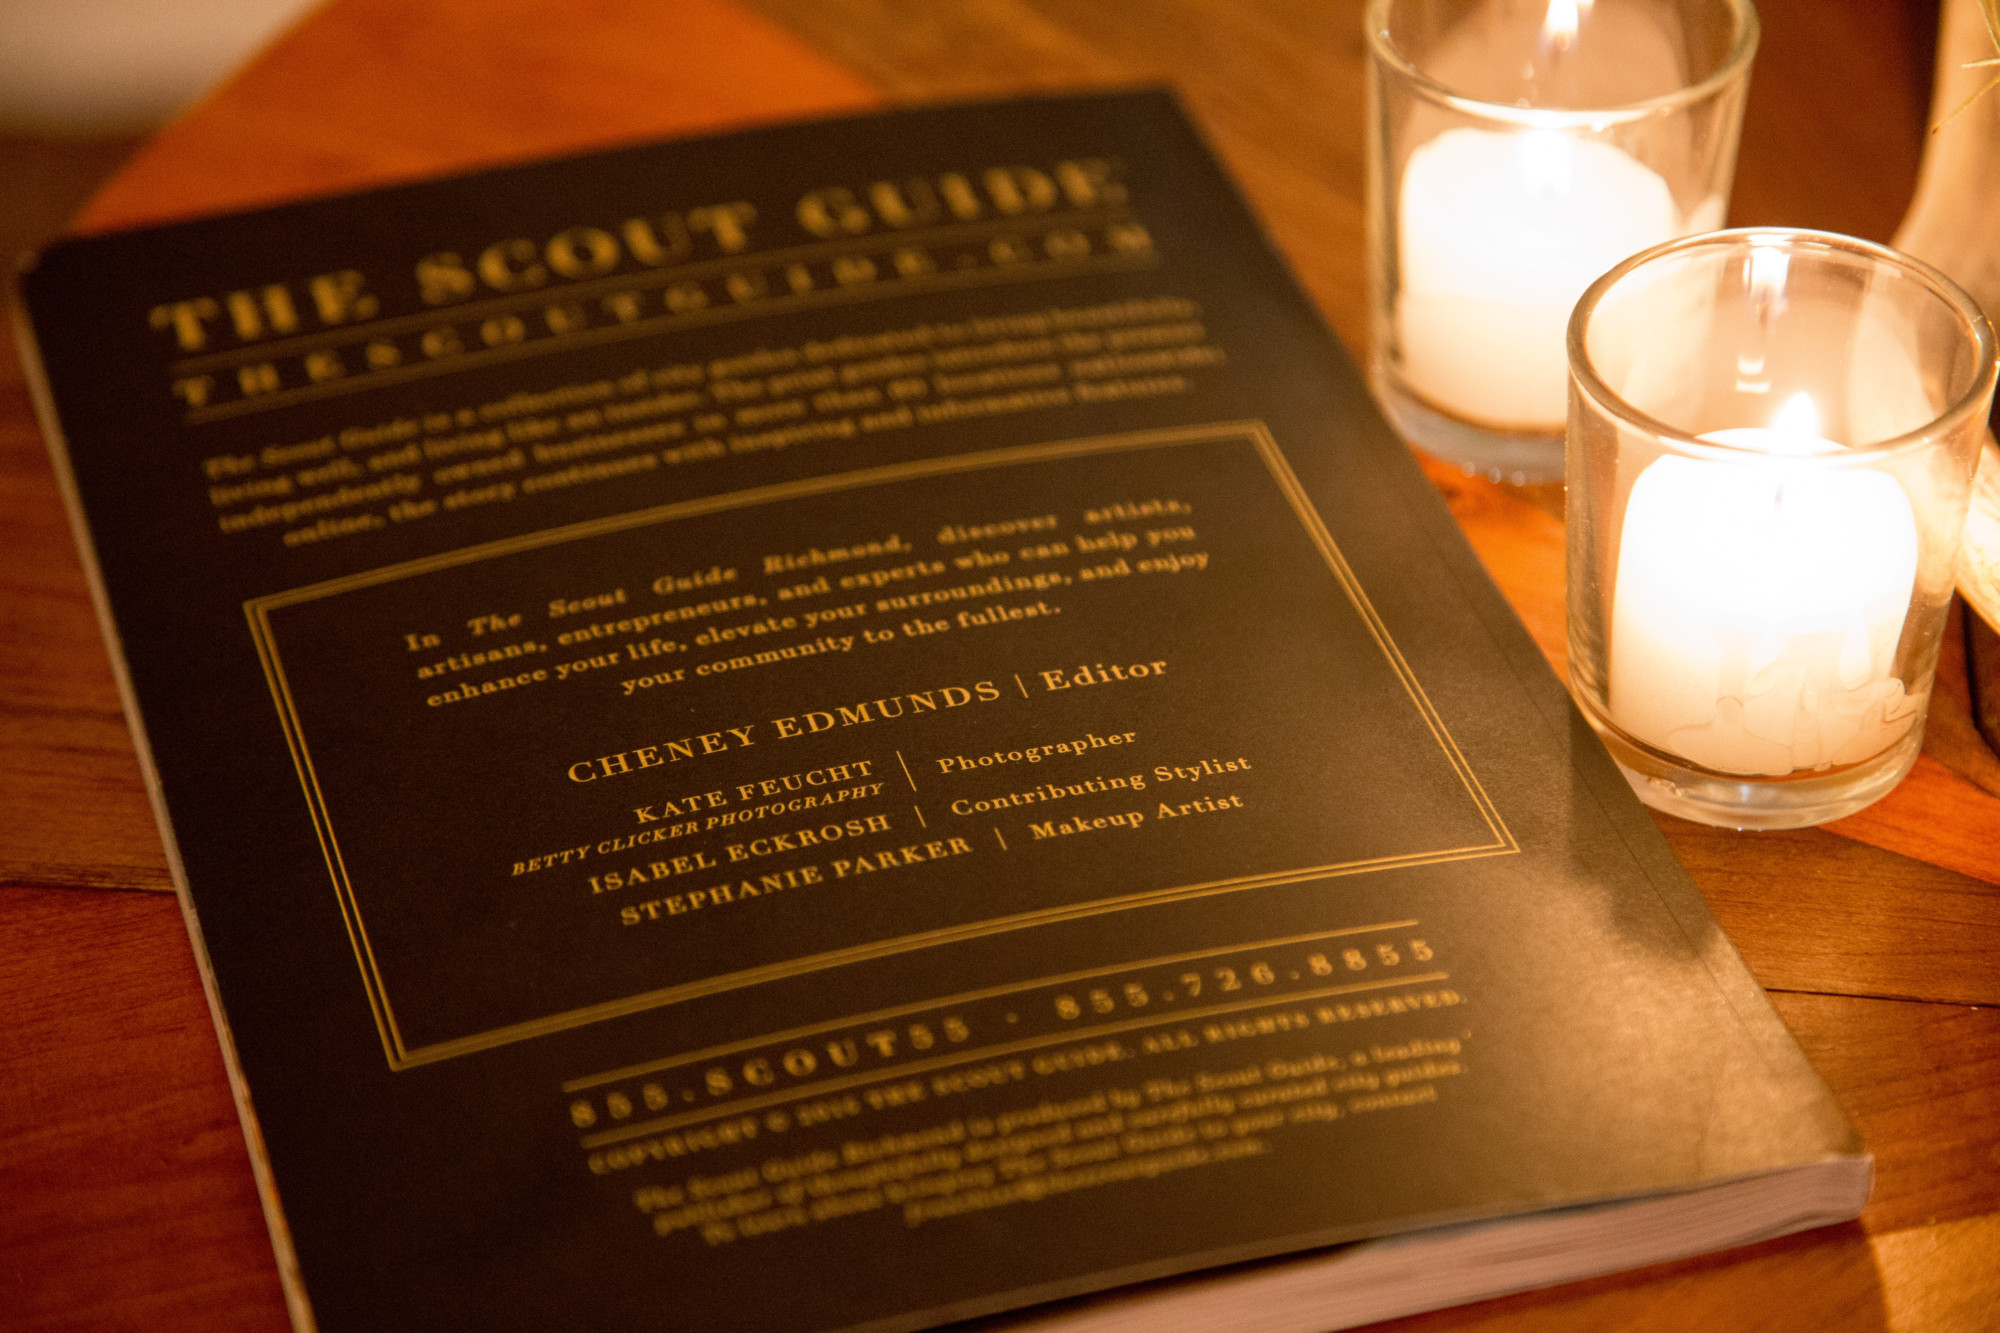 Glint Events, The Scout Guide, Richmond Virginia, RVA, Shagbark, launch party, release party, corporate event